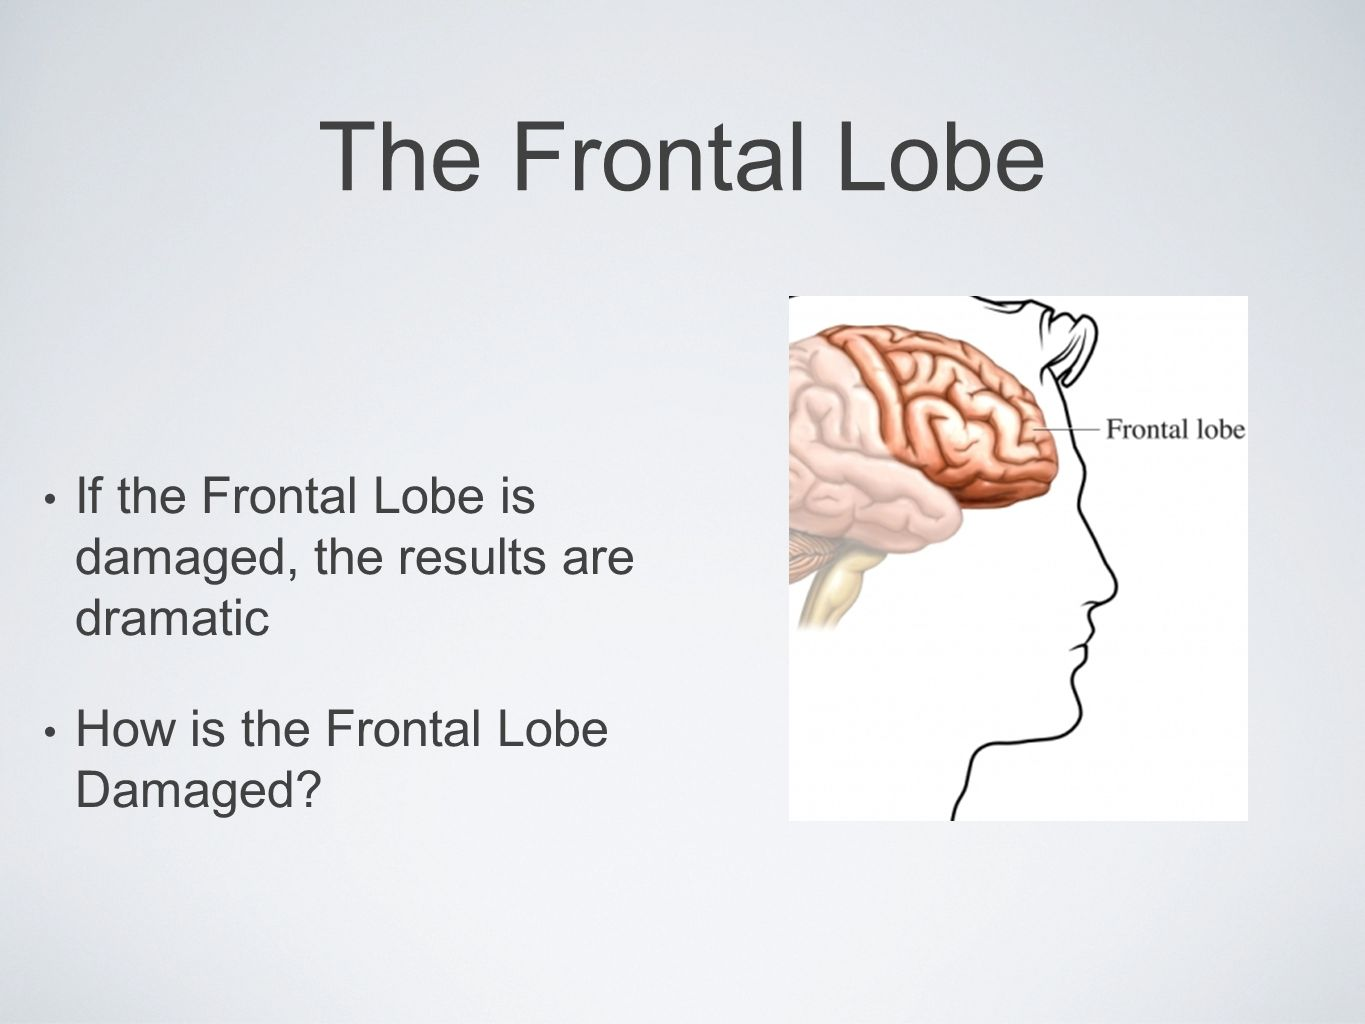 The Frontal Lobe If the Frontal Lobe is damaged, the results are dramatic How is the Frontal Lobe Damaged?